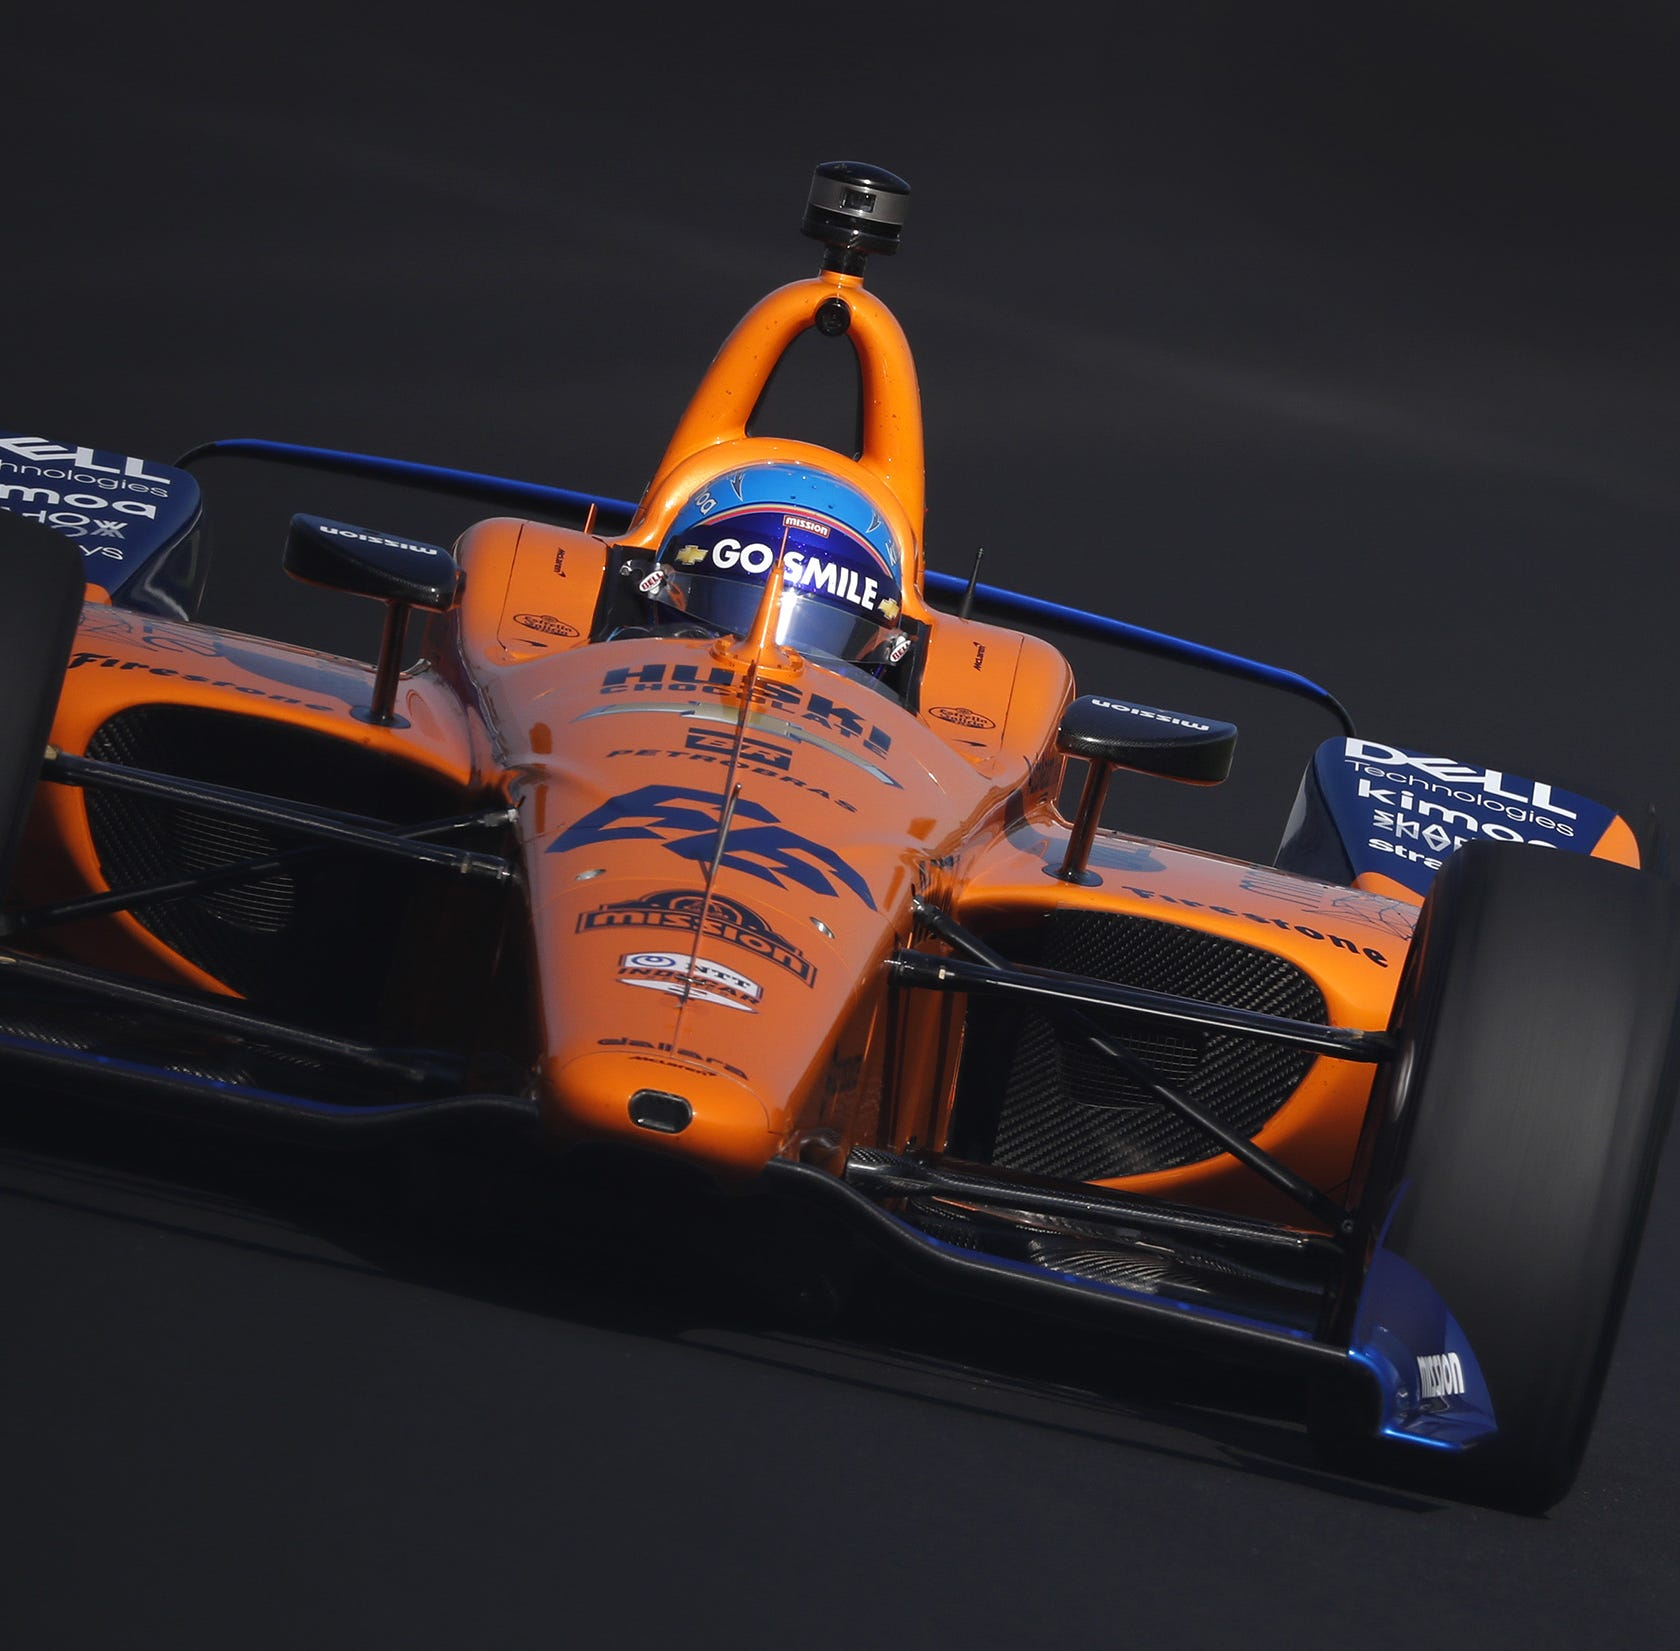 Indy 500 qualifying: Fernando Alonso struggles mightily